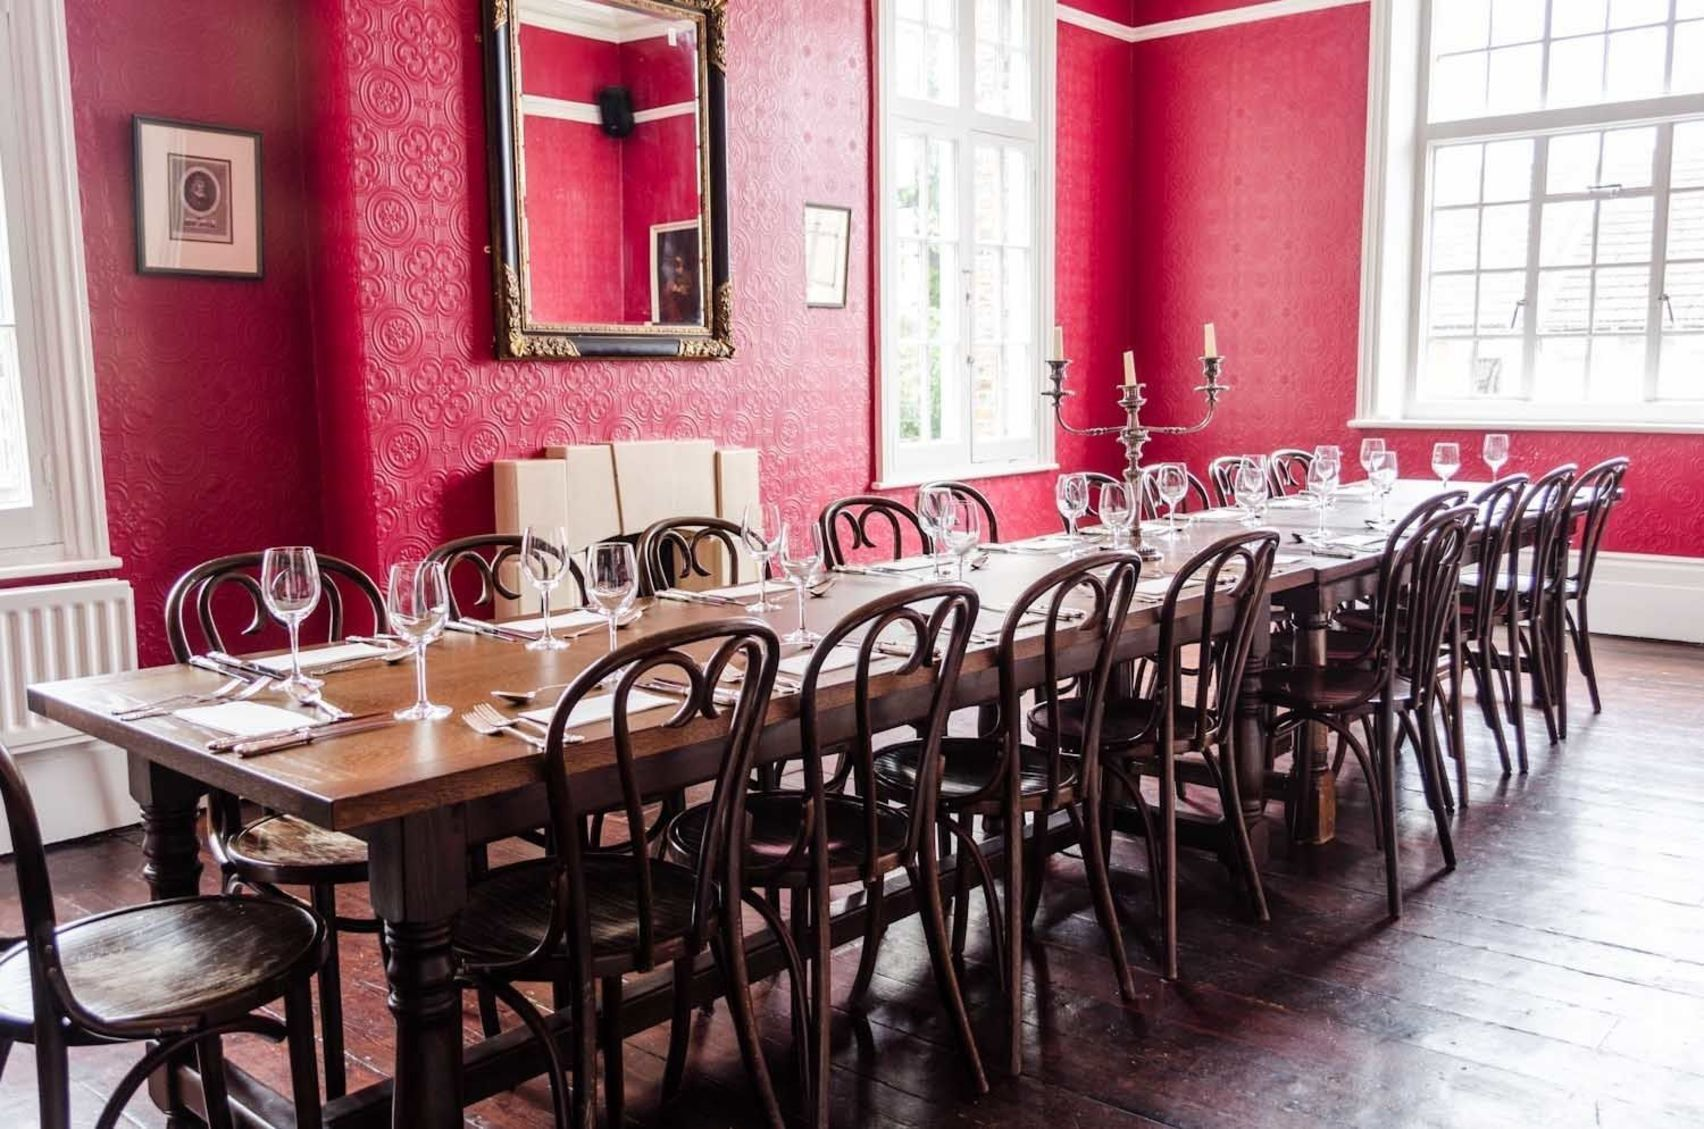 Private Dining Room, Day Hire, The Selkirk SW17